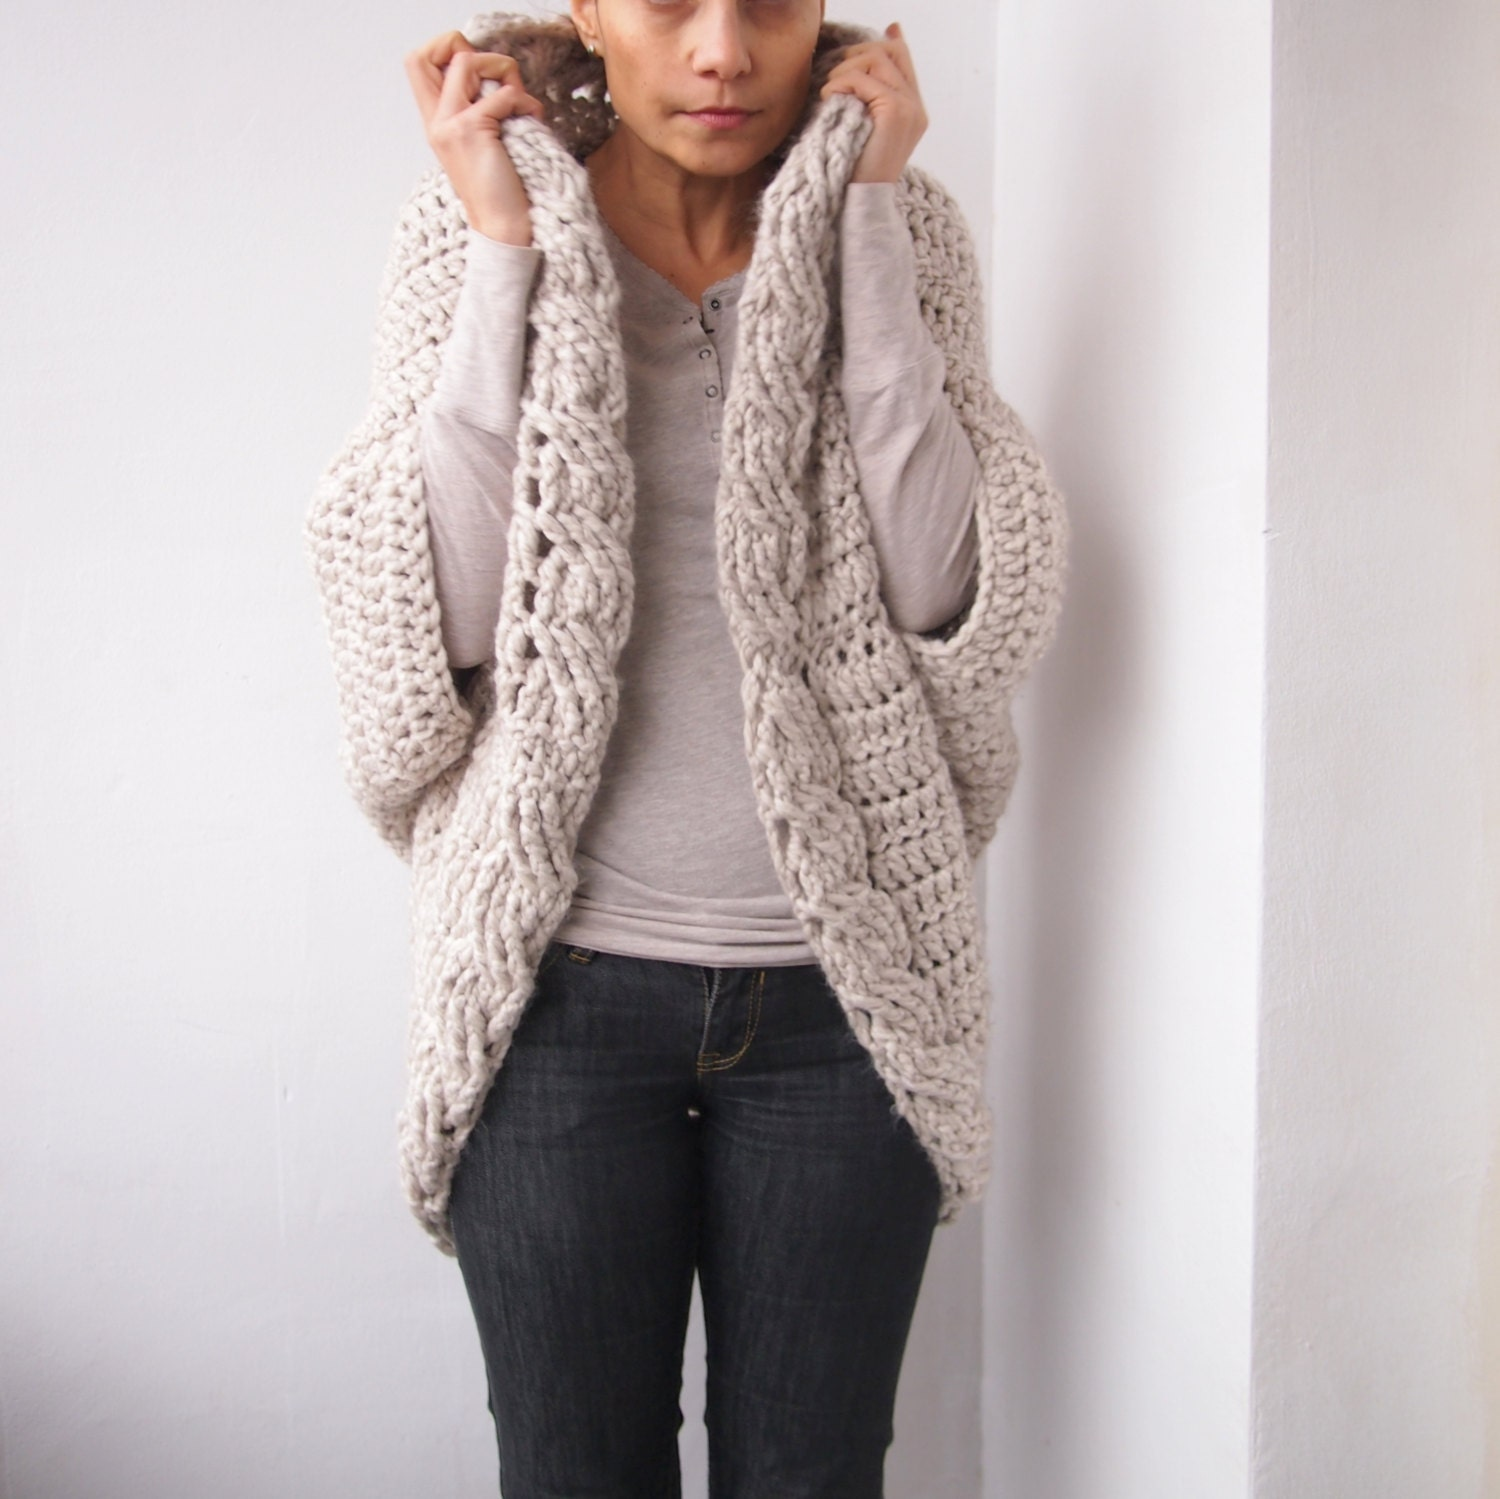 Free Crochet Pattern For Cabled Sweater : Crochet Pattern cable women shrug bulky coat cardigan plus